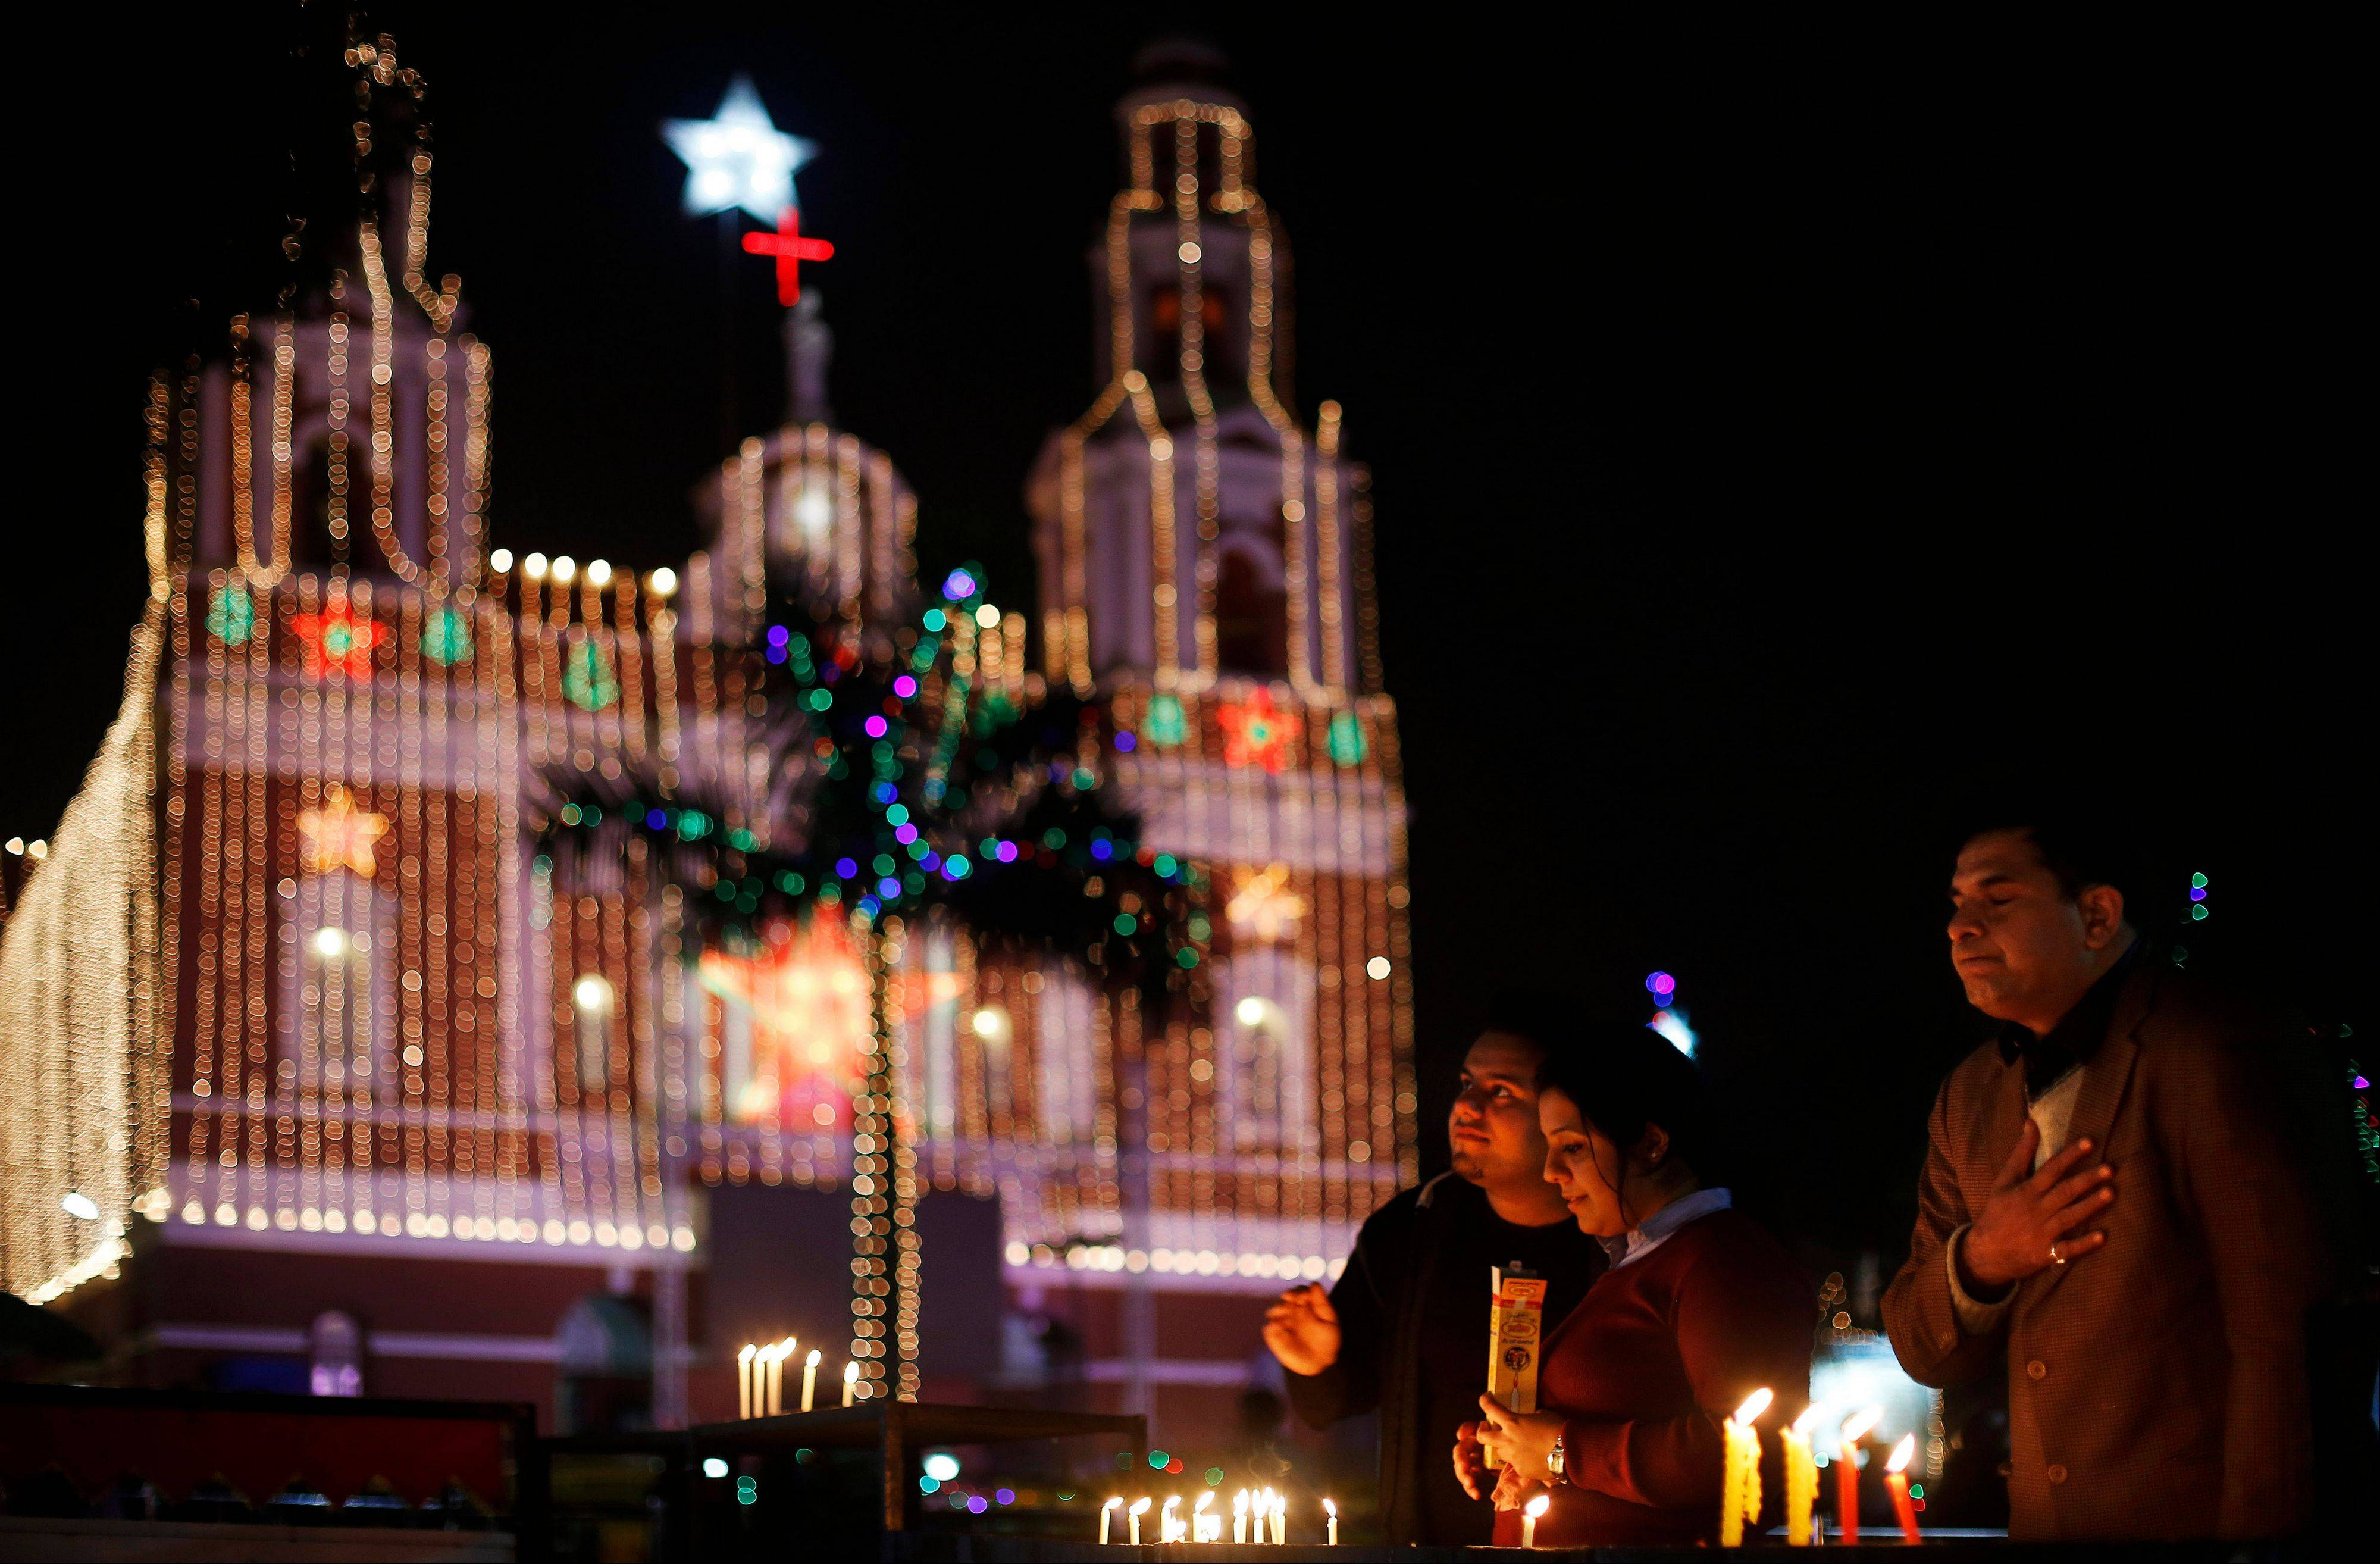 Indian Christian people light candles and pray at the illuminated Sacred Heart�s Cathedral on Christmas Eve in New Delhi, India, Tuesday, Dec. 24, 2013. Though Hindus and Muslims comprise the majority of the population in India, Christmas is celebrated with much fanfare.